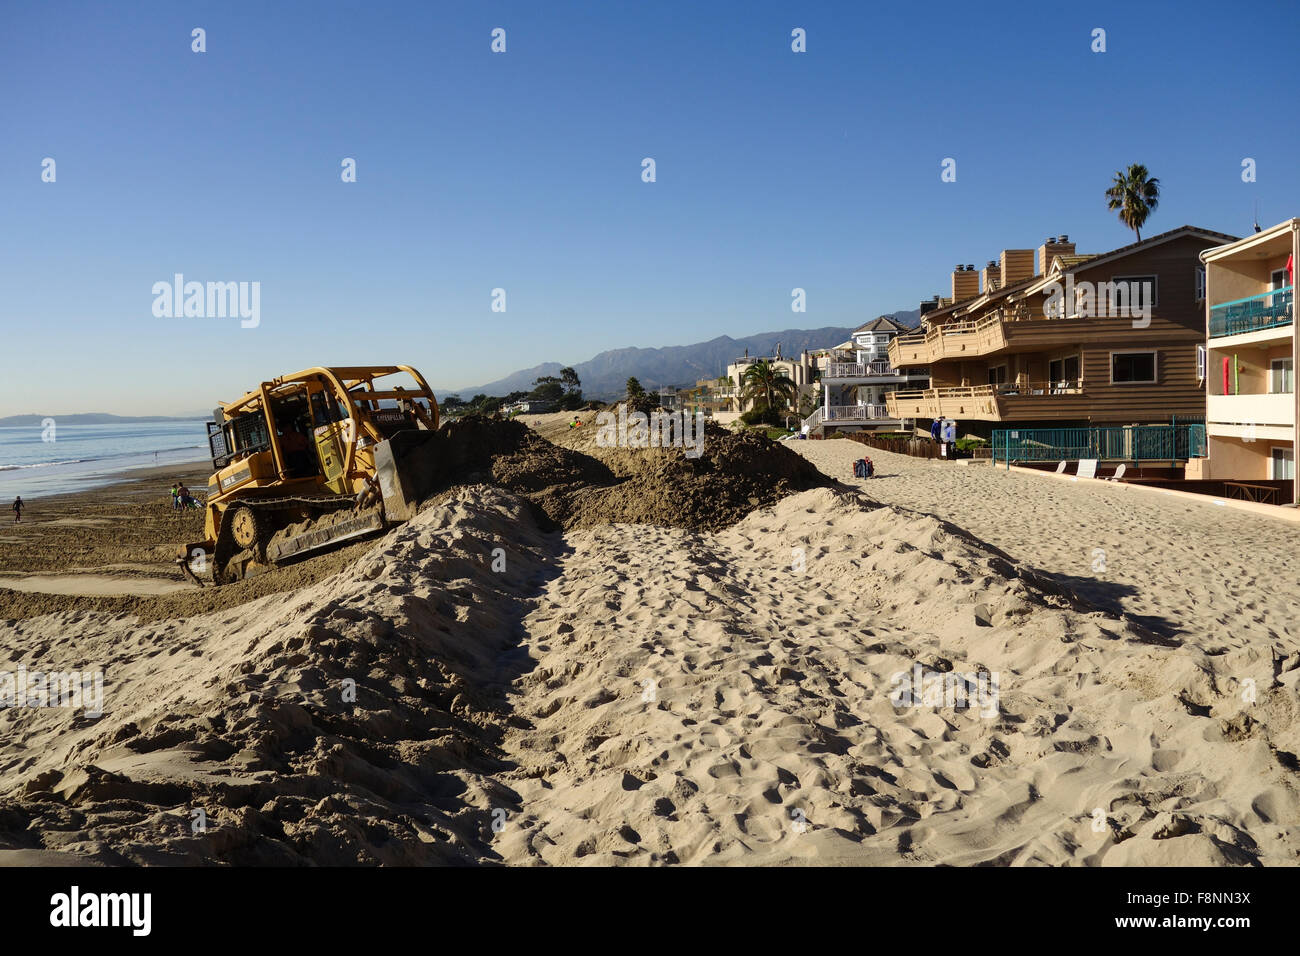 bulldozer builds sand berm to combat high tides and El Nino conditions on beach in Carpinteria Central California - Stock Image